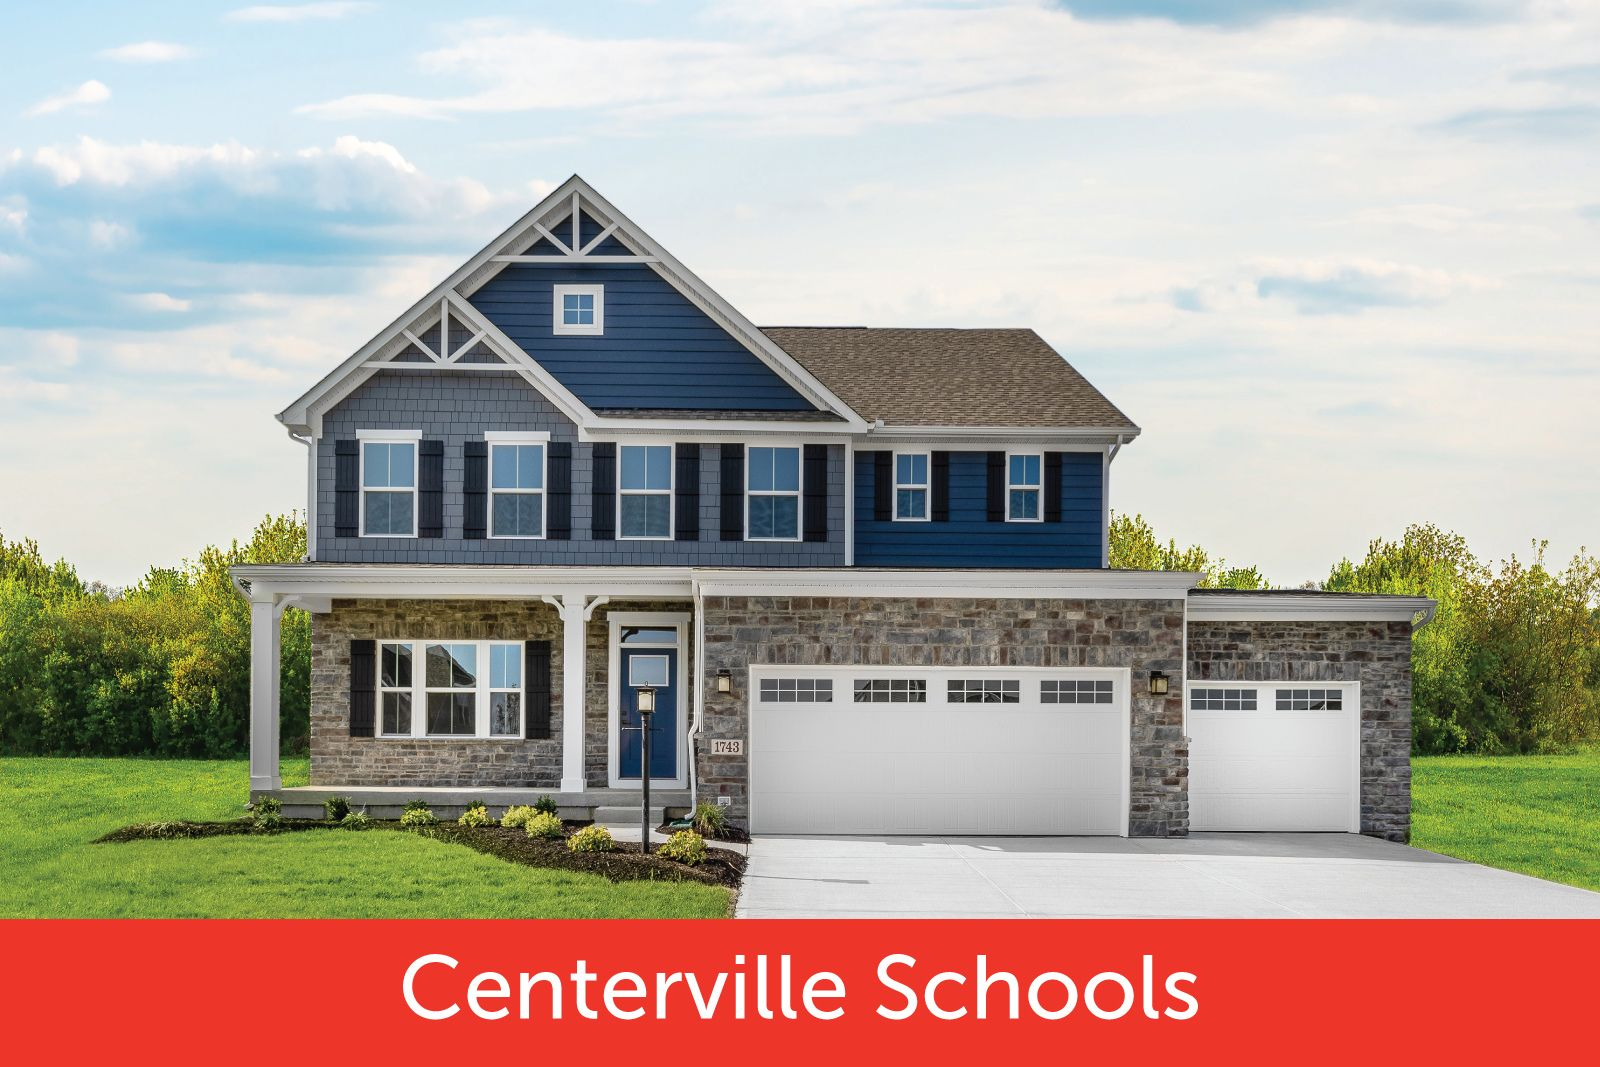 Welcome Home to Creekside at Winding Creek:Wooded homesites up to 1/2 acre or larger in Centerville School District. 3-car garages, included finished basements & community pool. From mid $300s!Click here to schedule your visit!